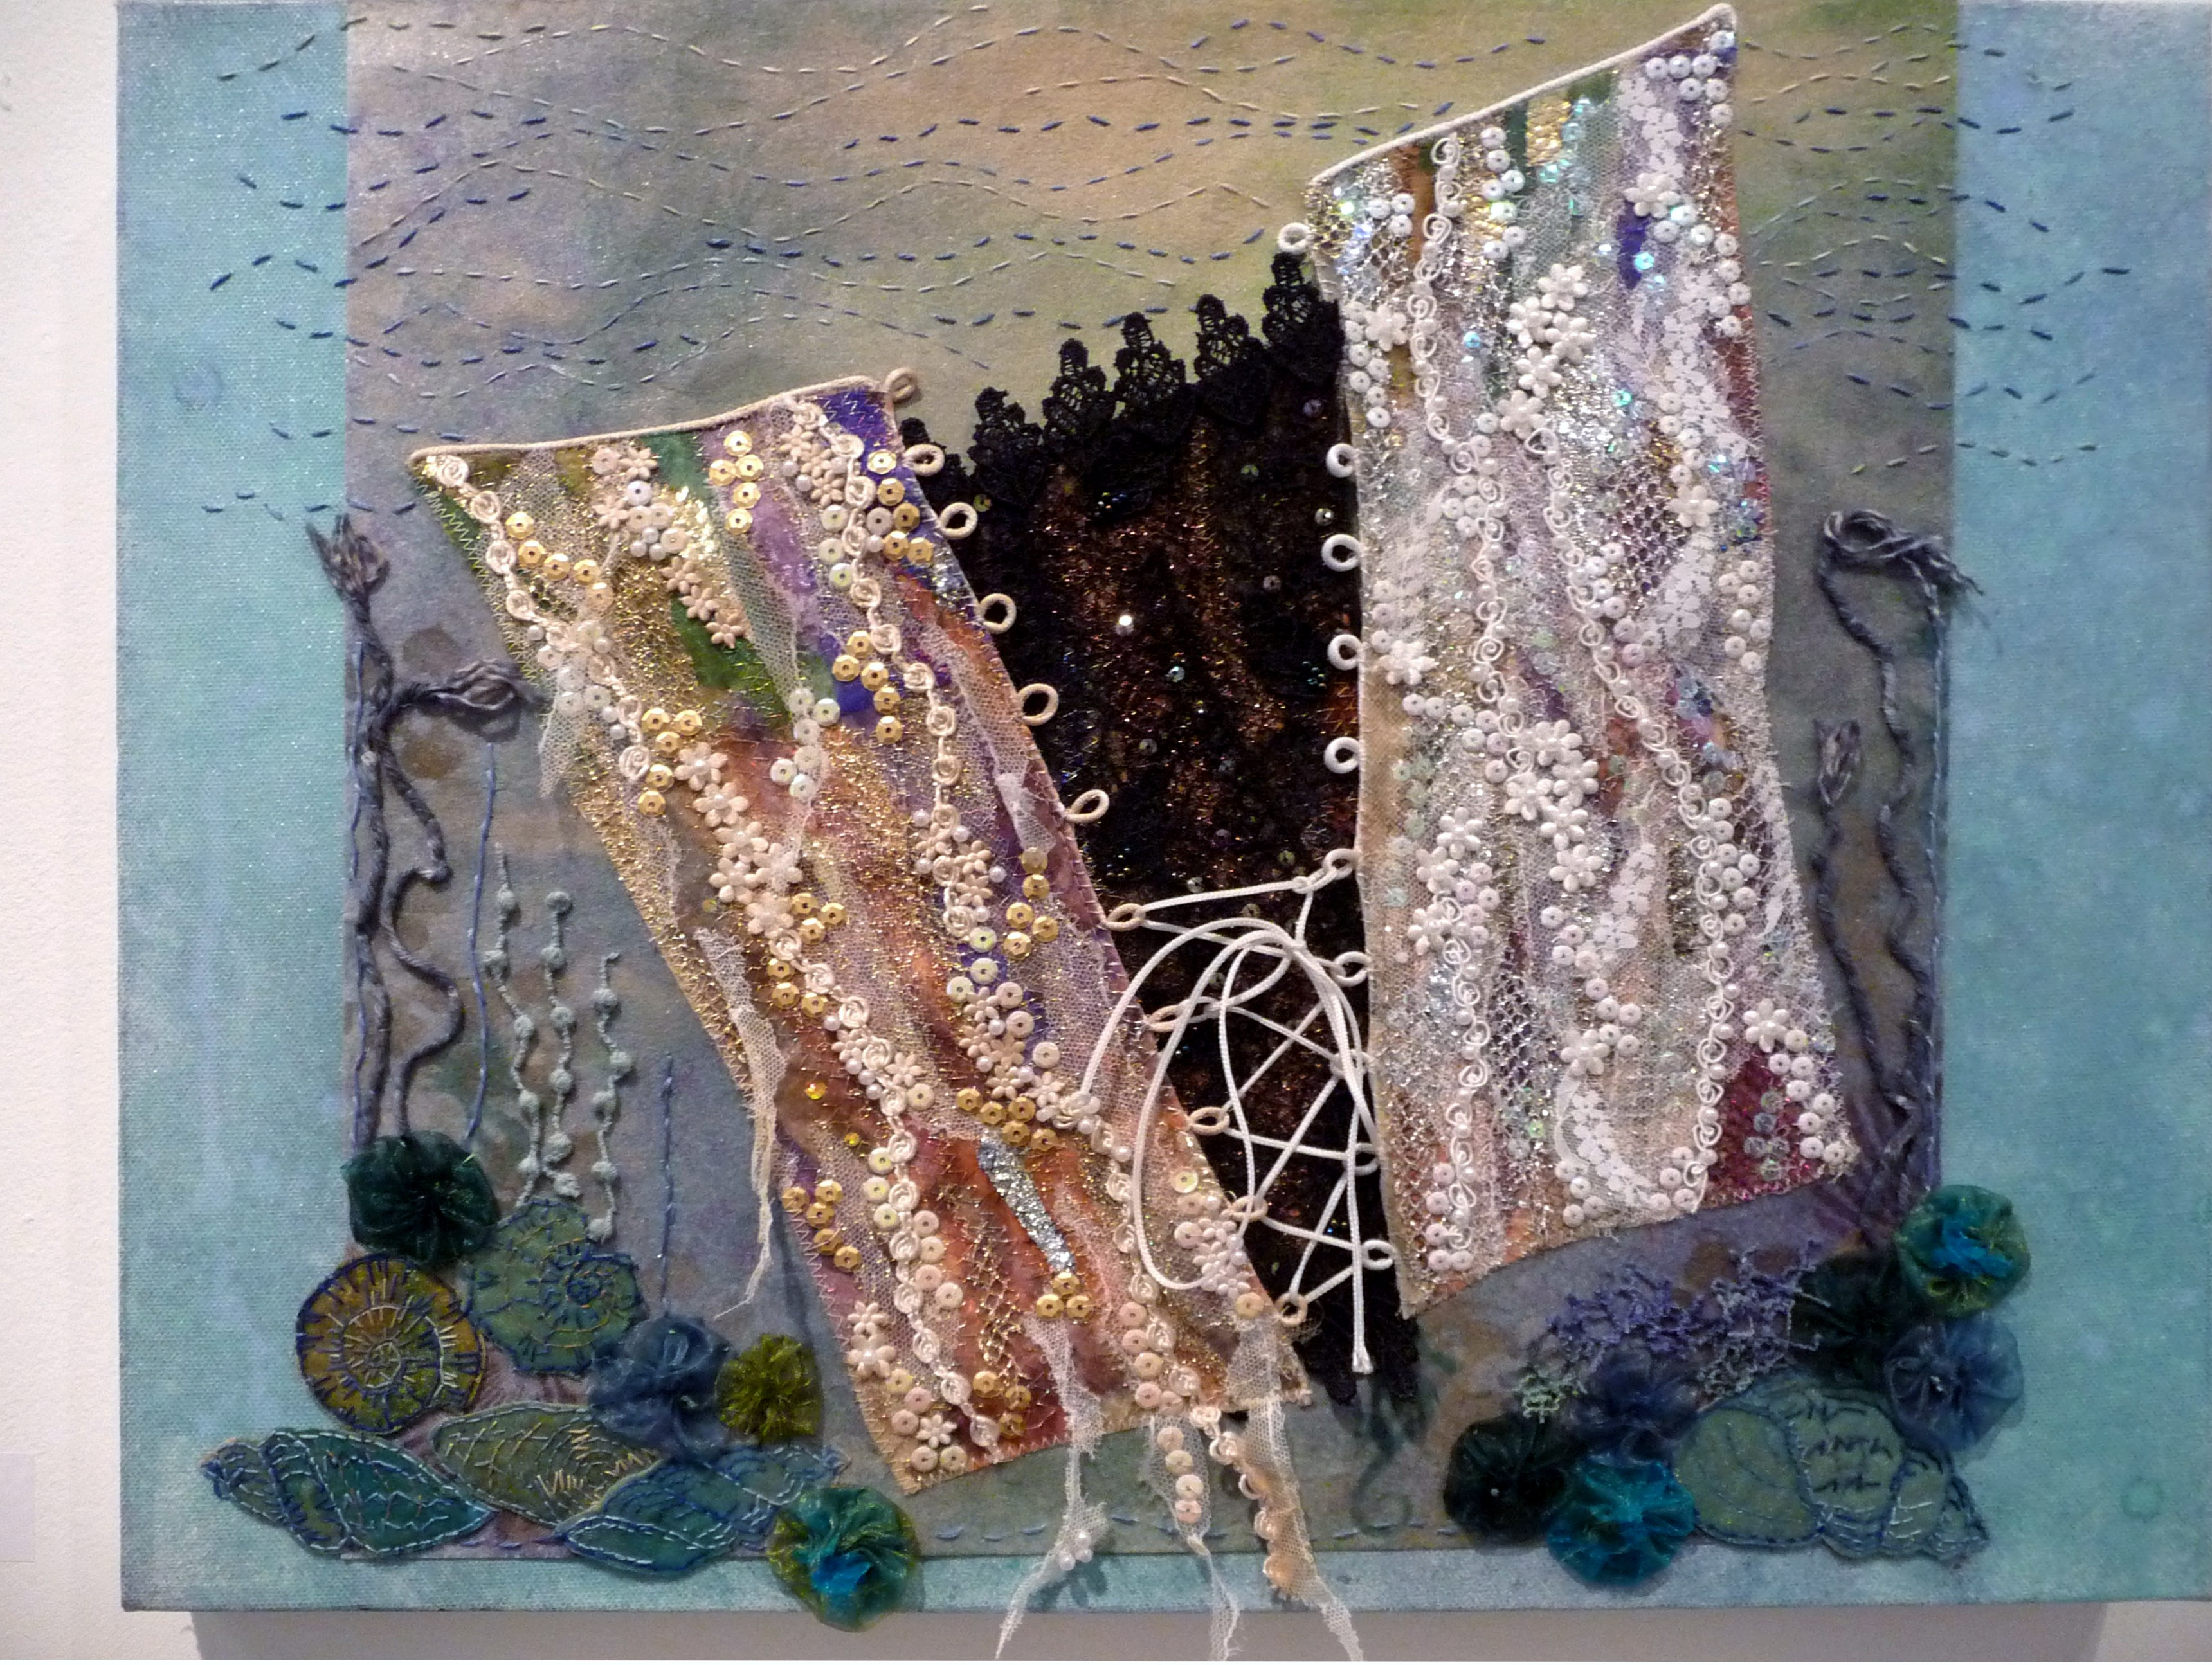 THE WATER HORSES BRIDE by Barbara Ryall, machine and hand embroidery